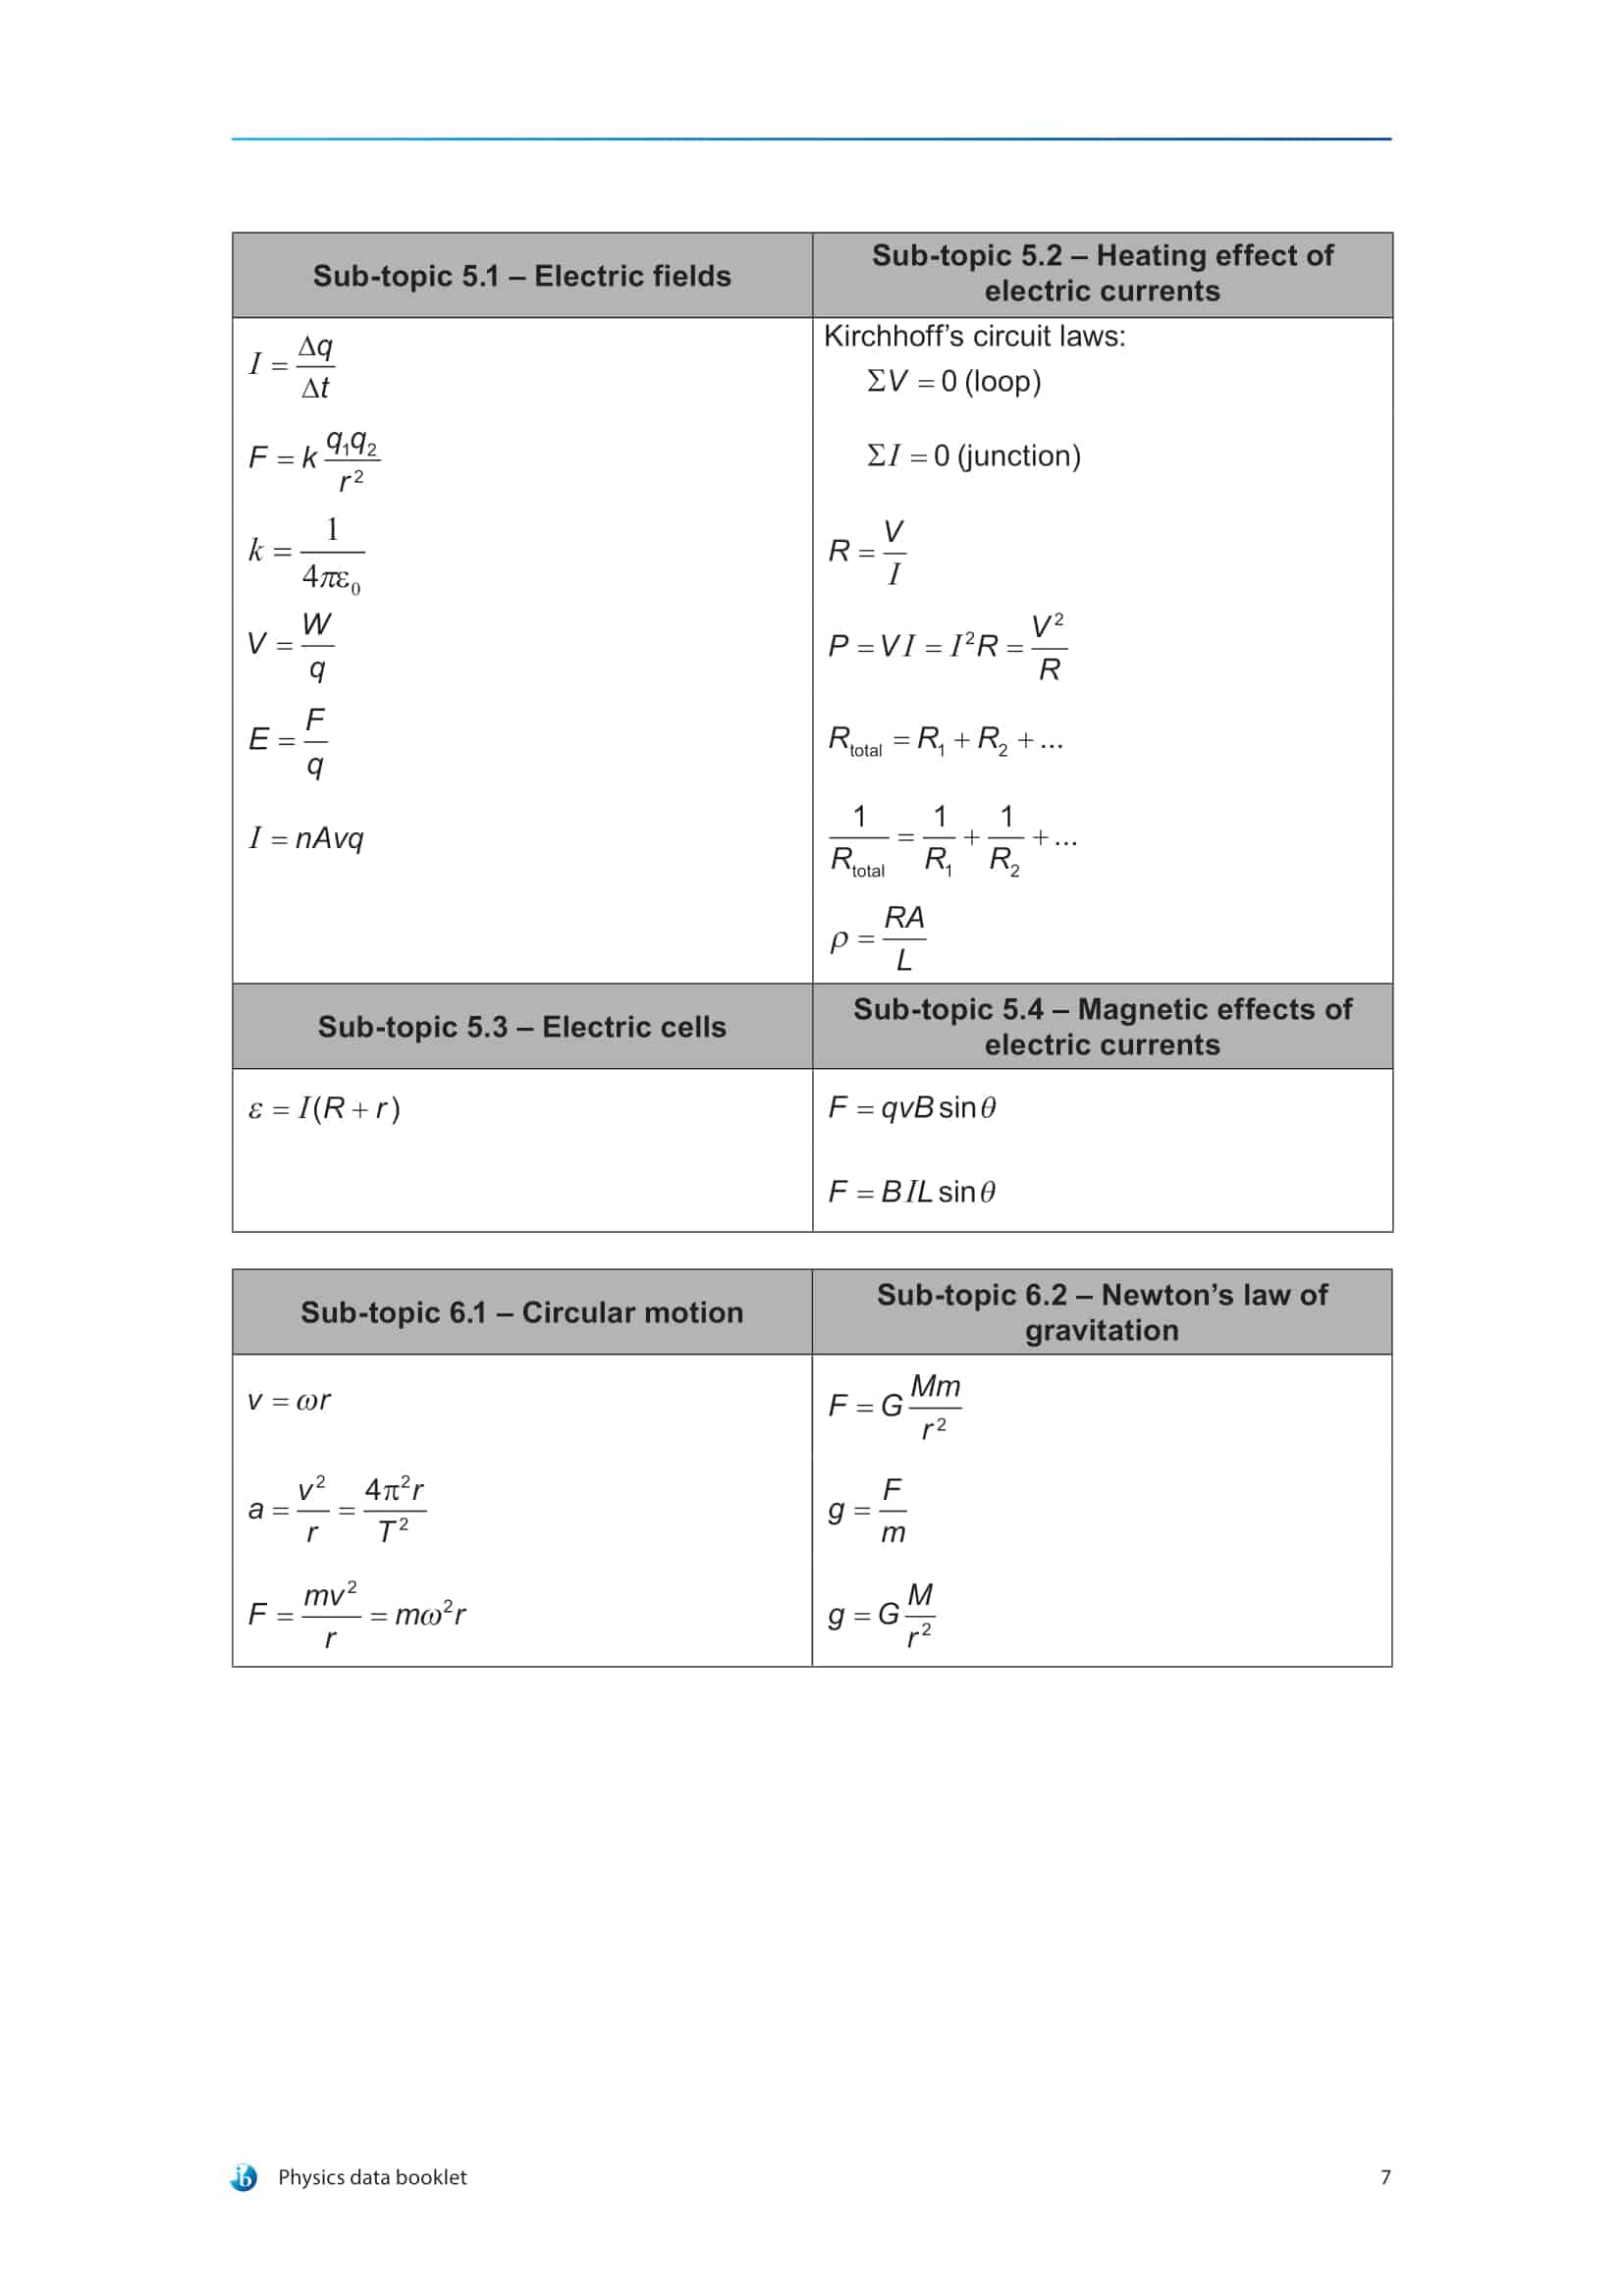 IB Physics Data Booklet-11